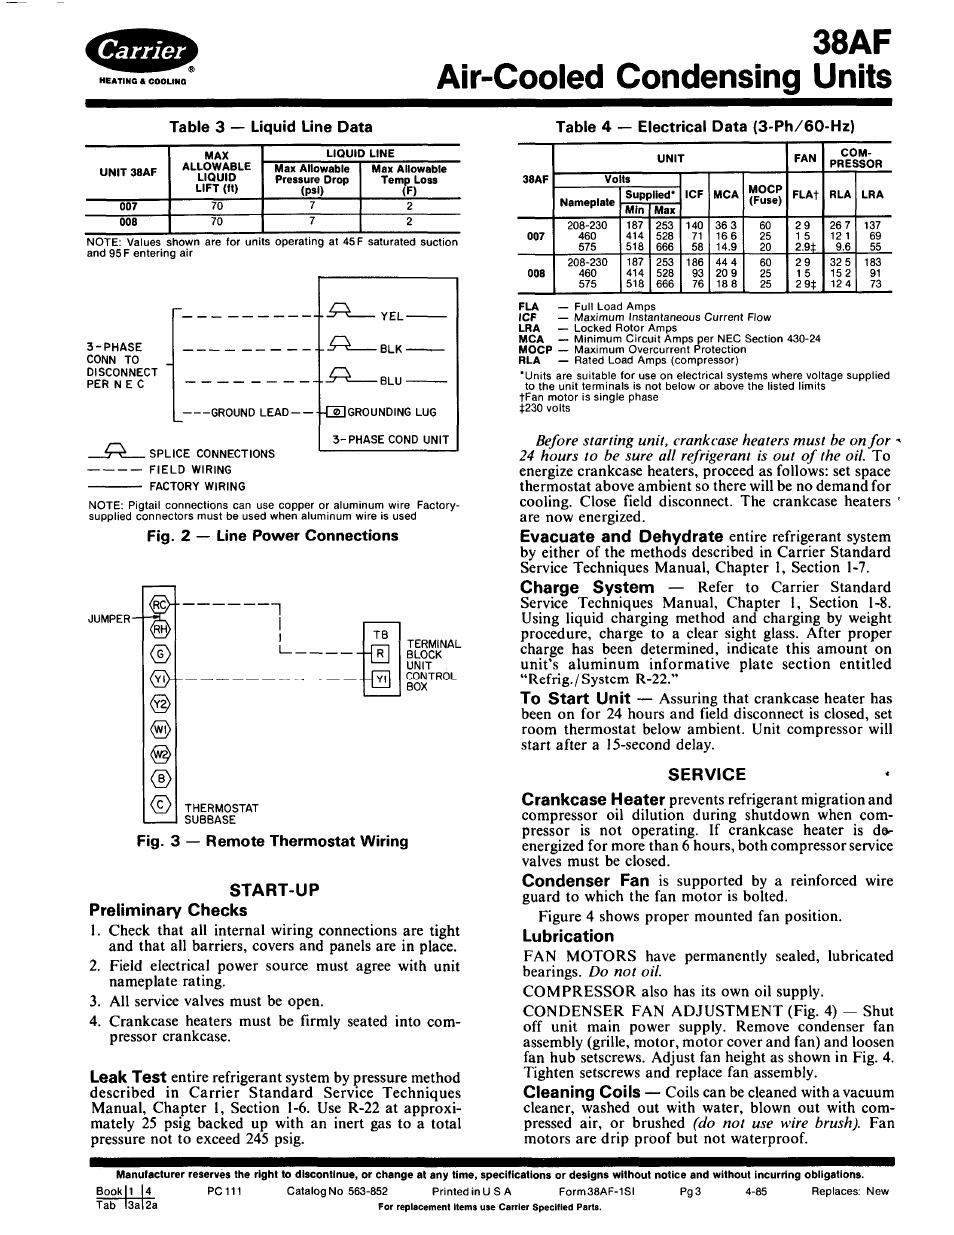 38af air-cooled condensing units, Table 3 — liquid line